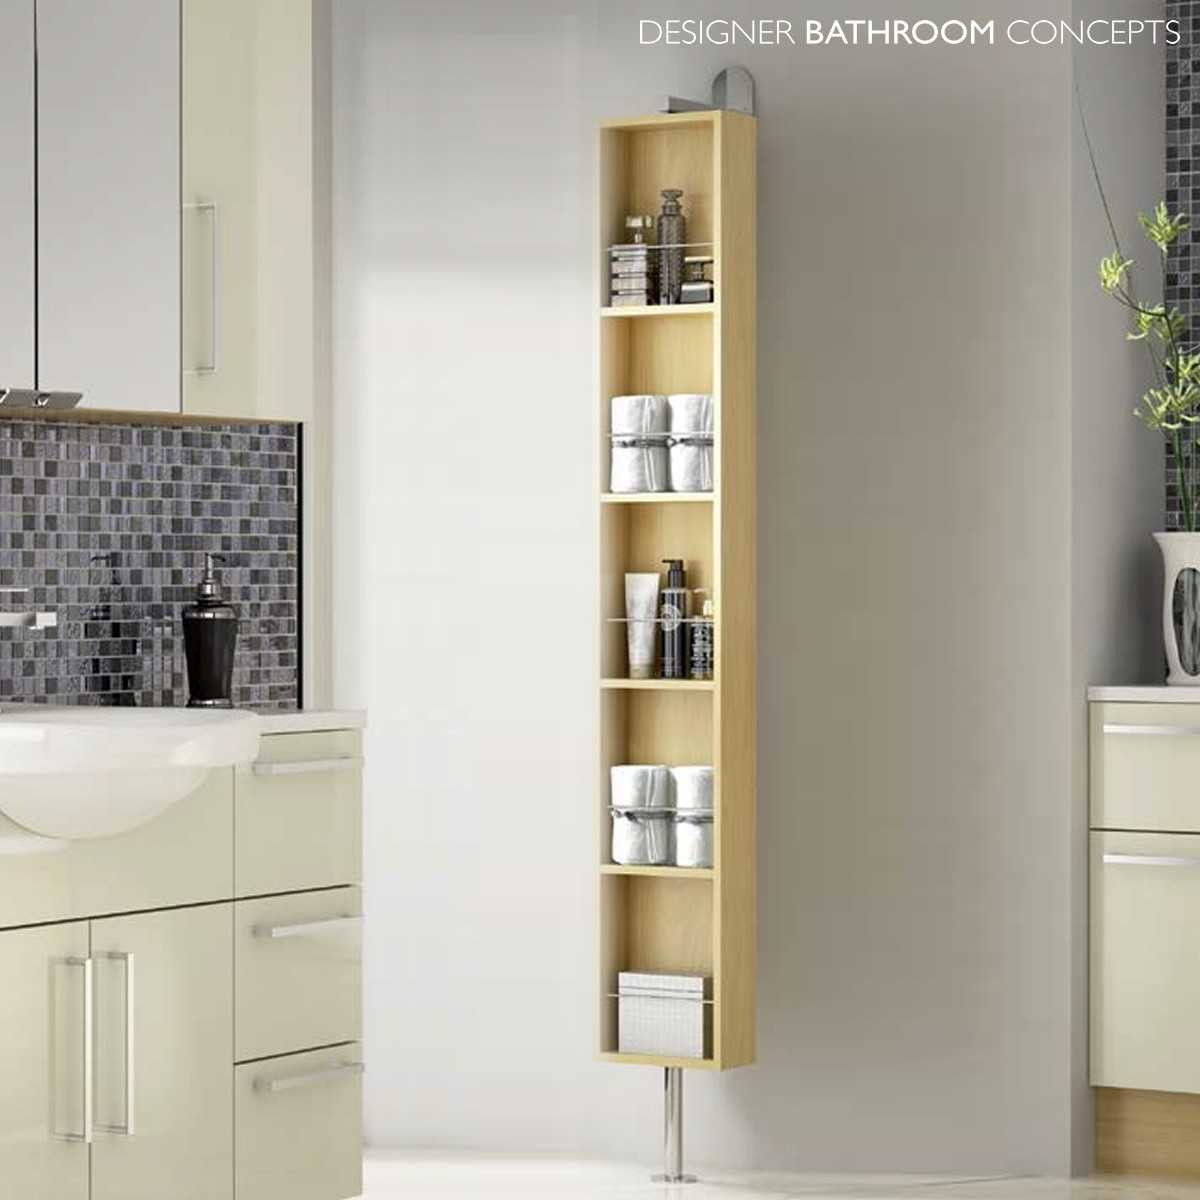 55 Rotating Bathroom Cabinet Top Rated Interior Paint Check More At Http 1coolai Bathroom Design Freestanding Bathroom Furniture Bathroom Cabinets Designs [ 1200 x 1200 Pixel ]